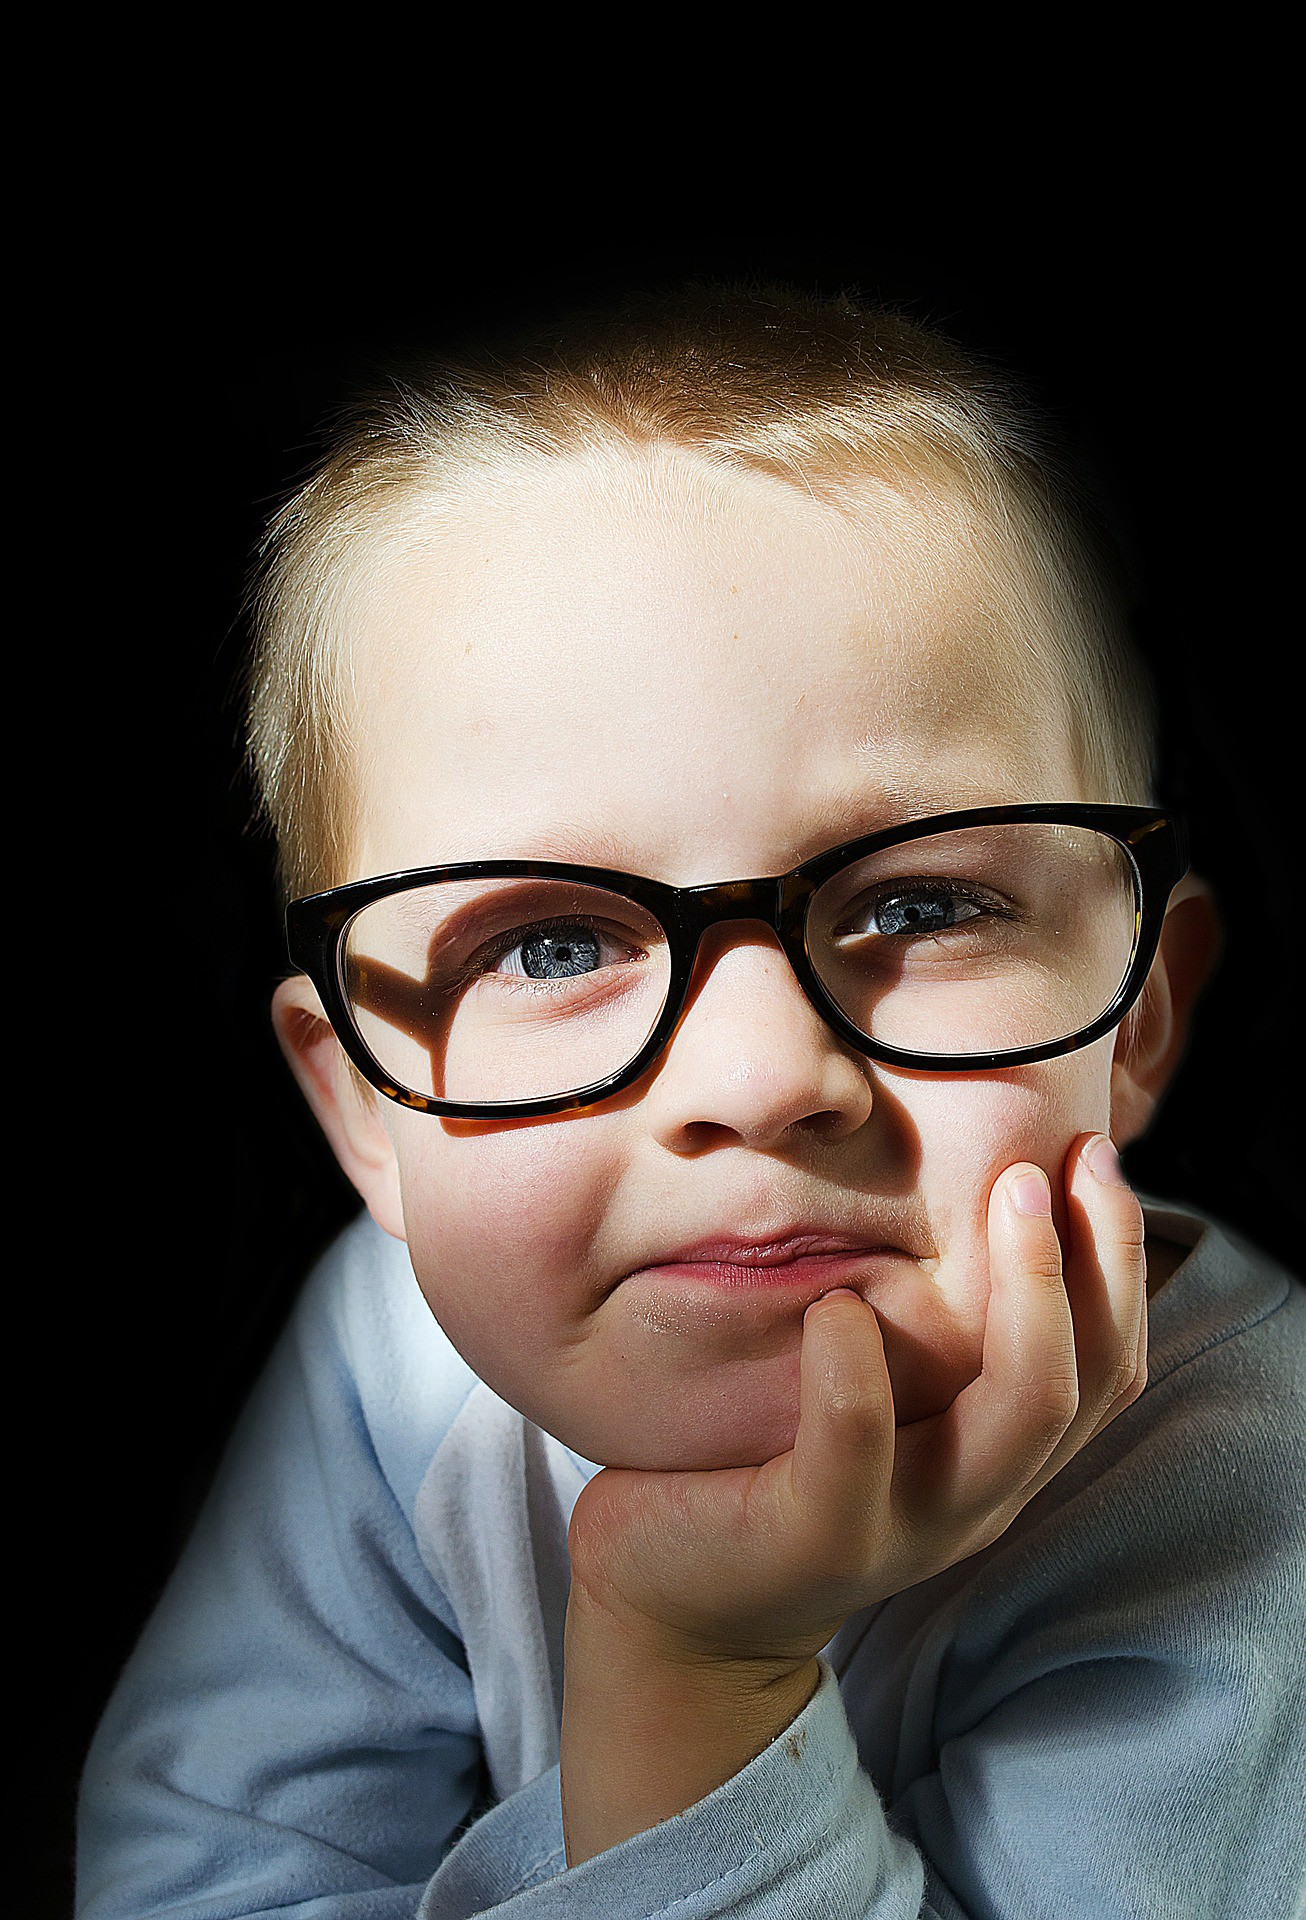 Little boy with glasses looking into camera